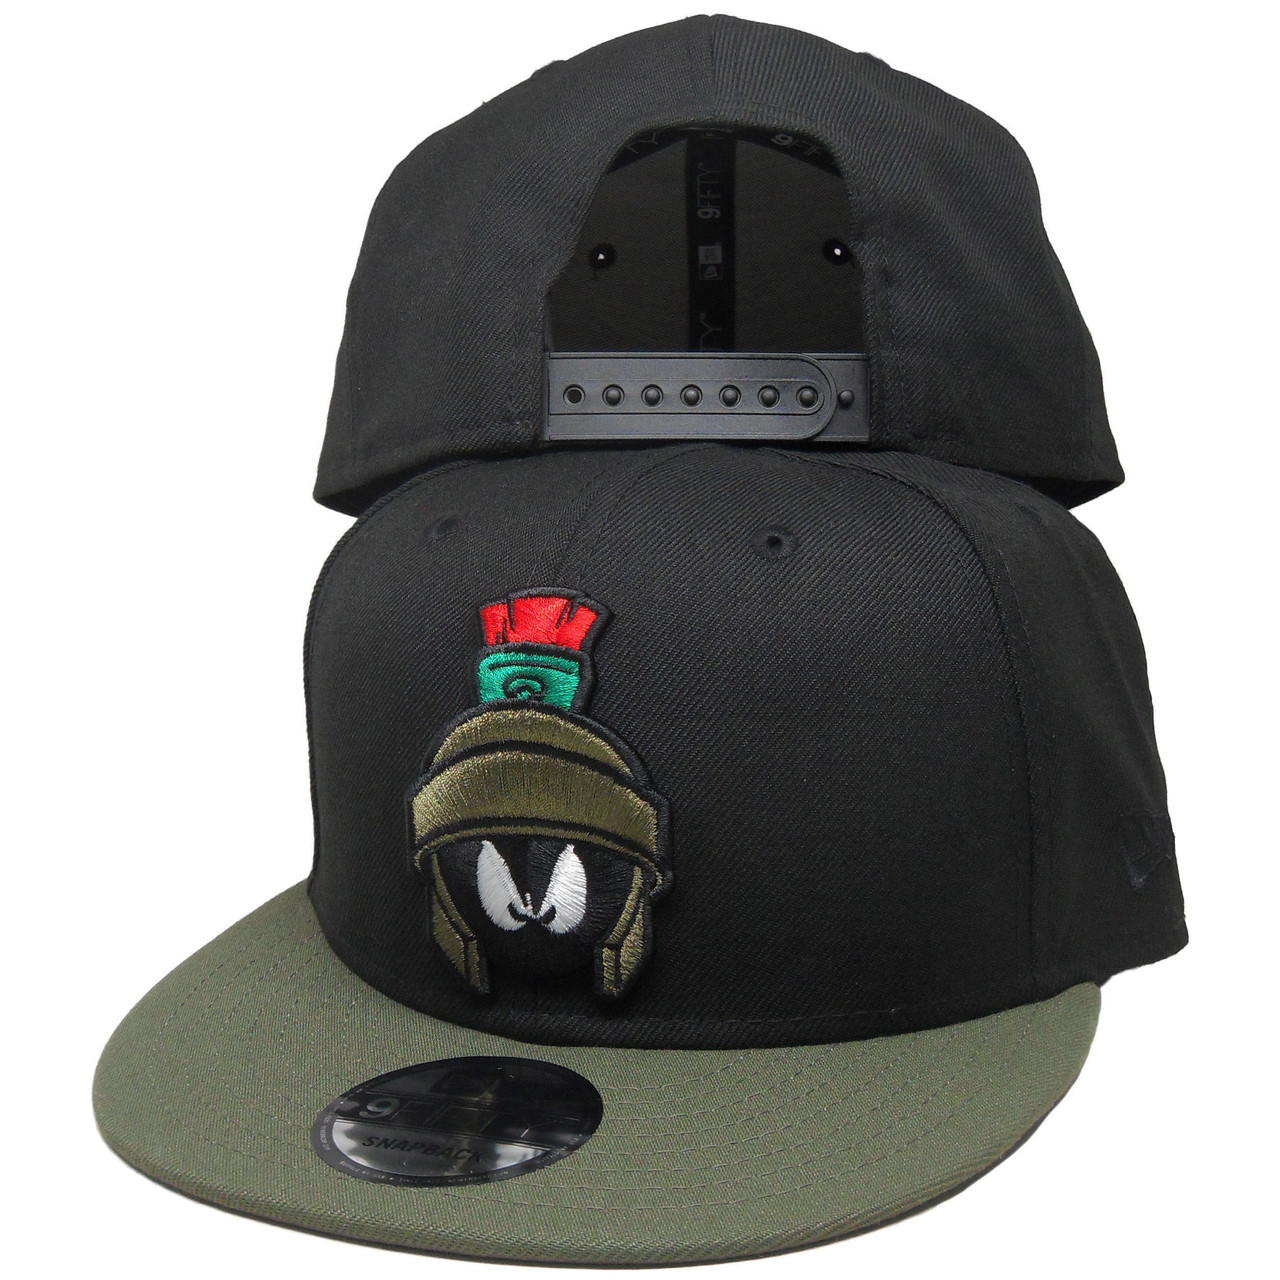 309bdb1264f4c4 Marvin the Martian New Era Custom 9Fifty Snapback - Black, Olive, Red -  ECapsUnlimited.com